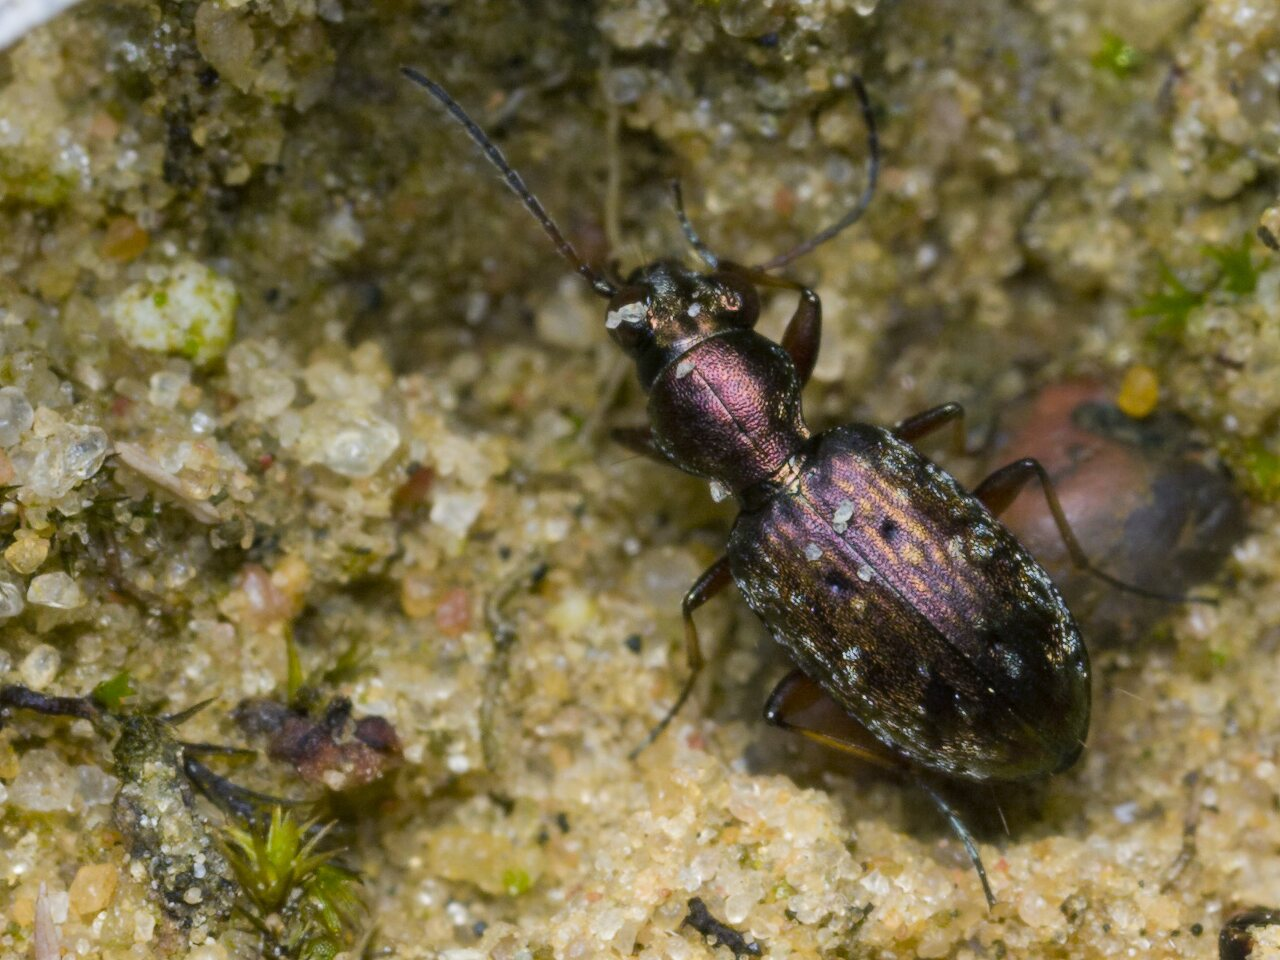 Asaphidion-pallipes-1225.jpg